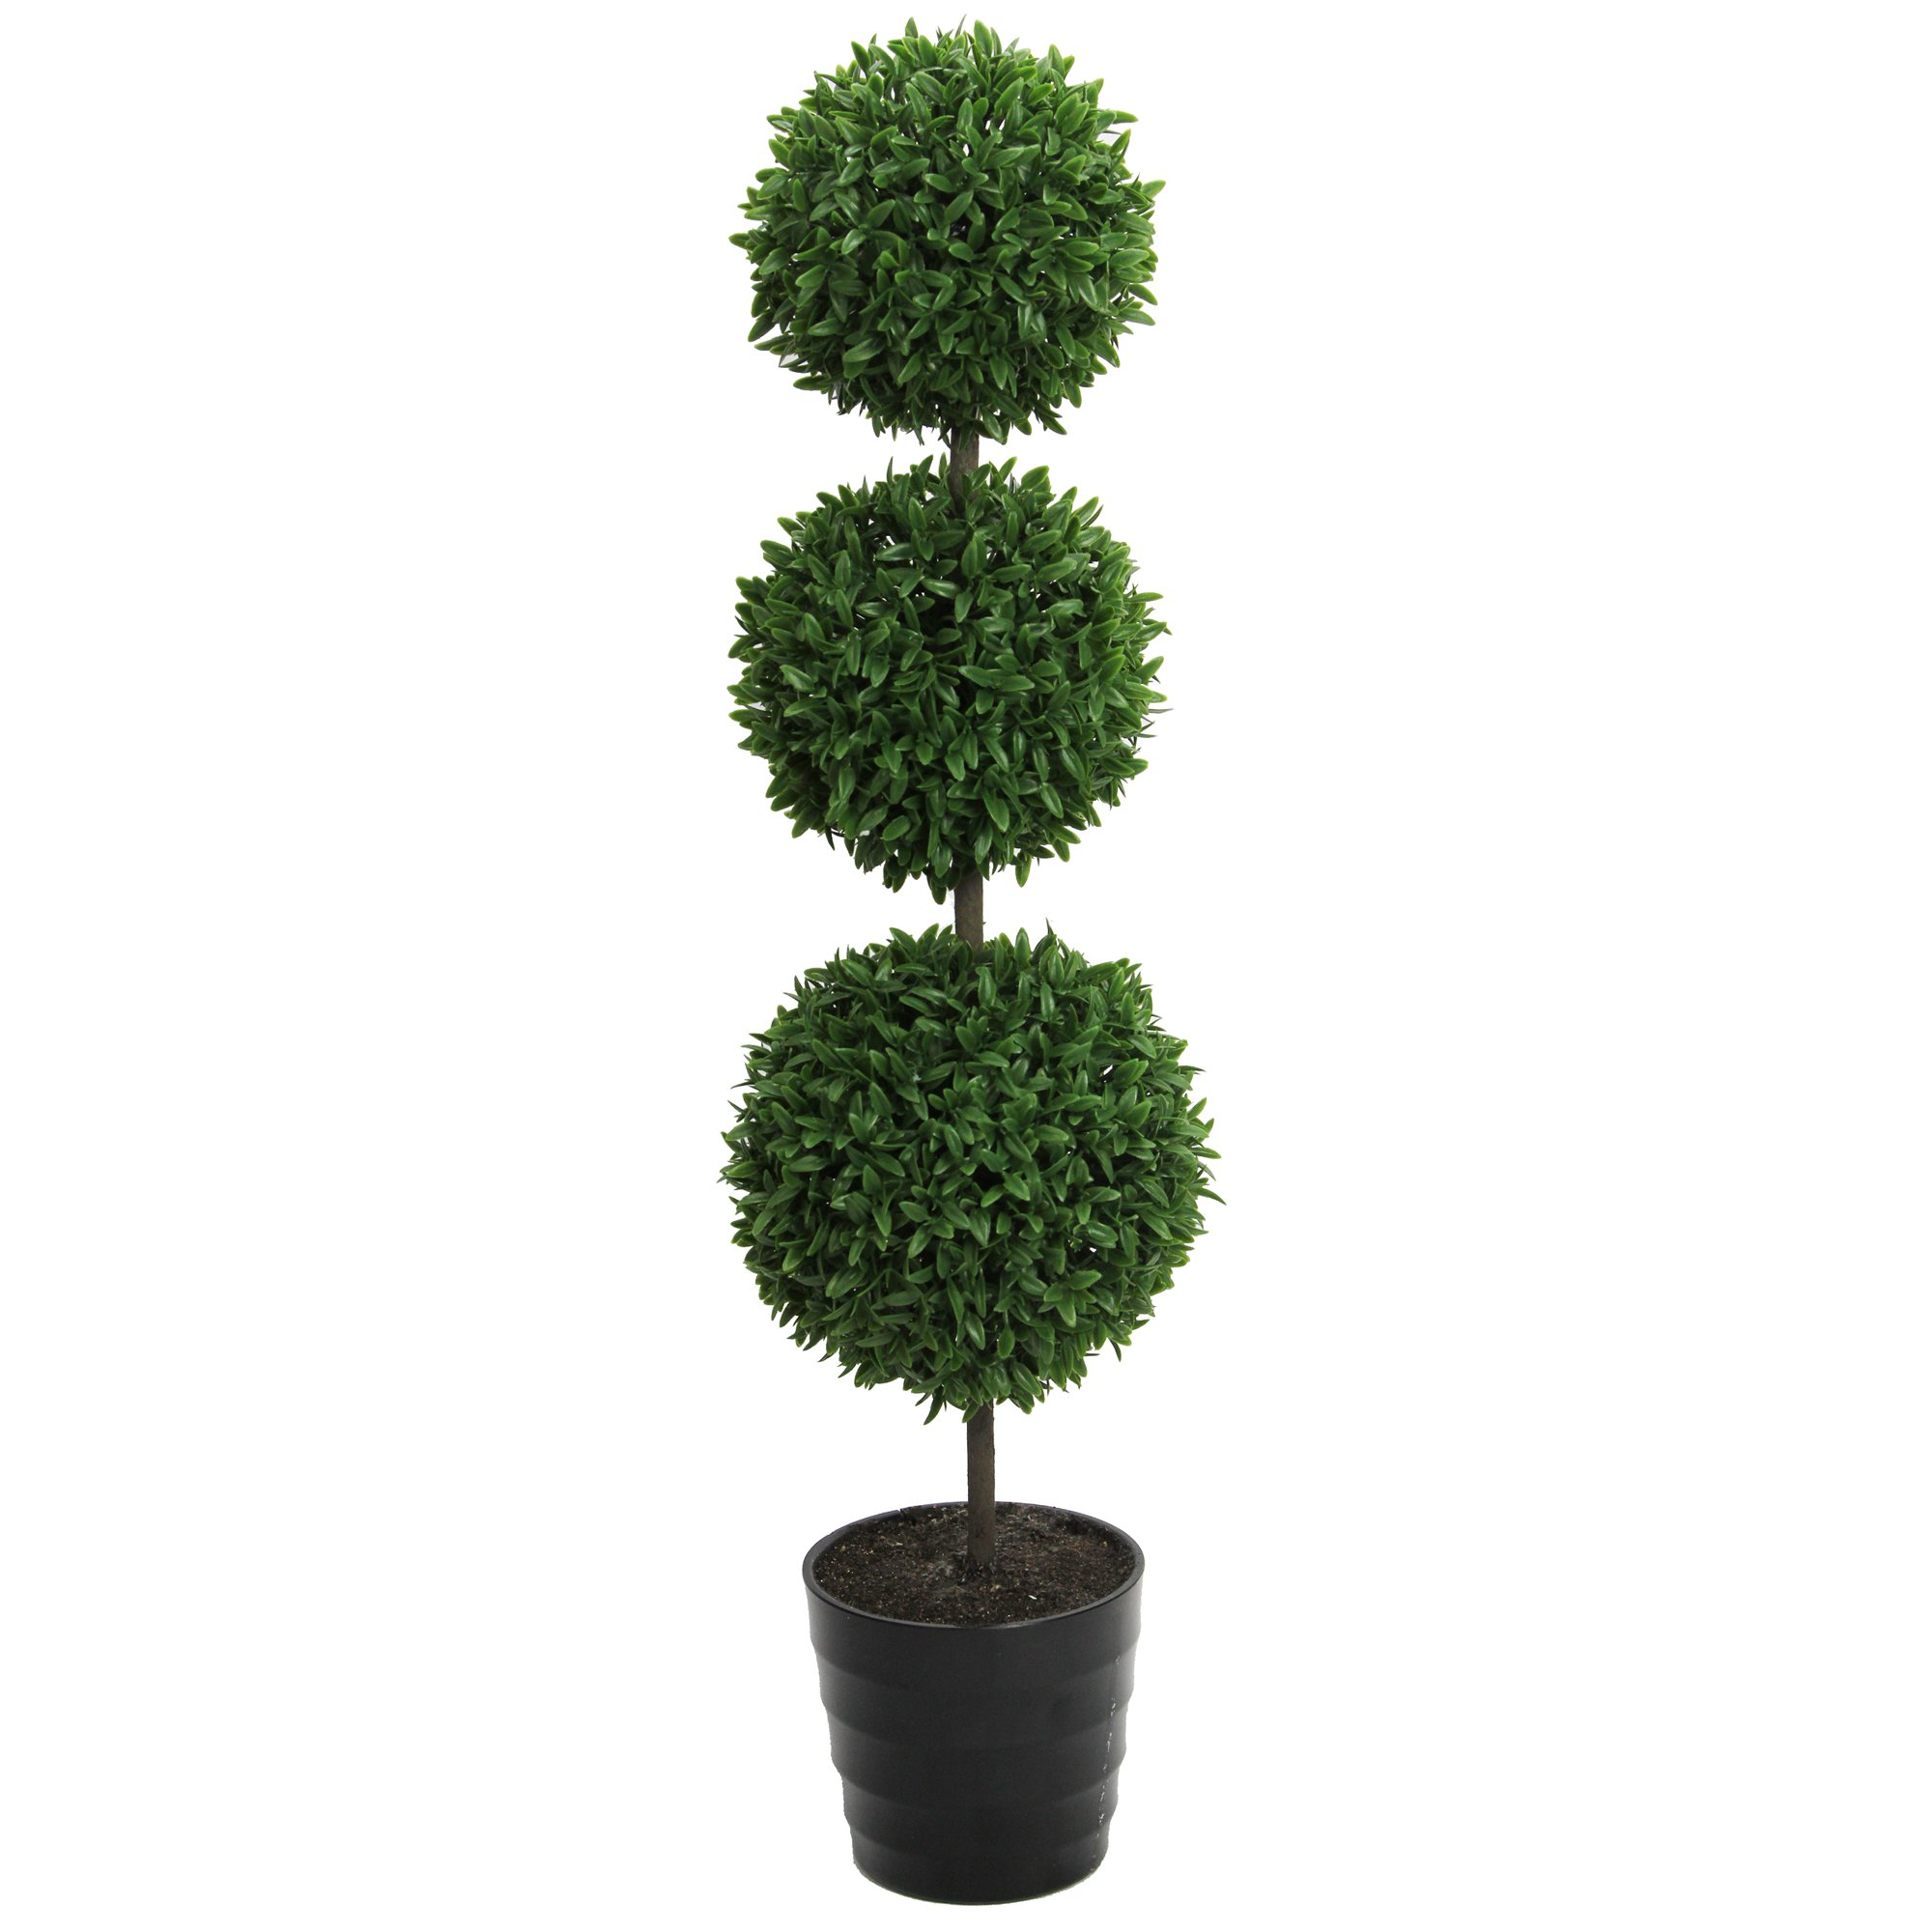 Admired By Nature 24'' Tall Artificial Tabletop English Boxwood Triple Ball Shaped Topiary Plant in Plastic Pot, Green